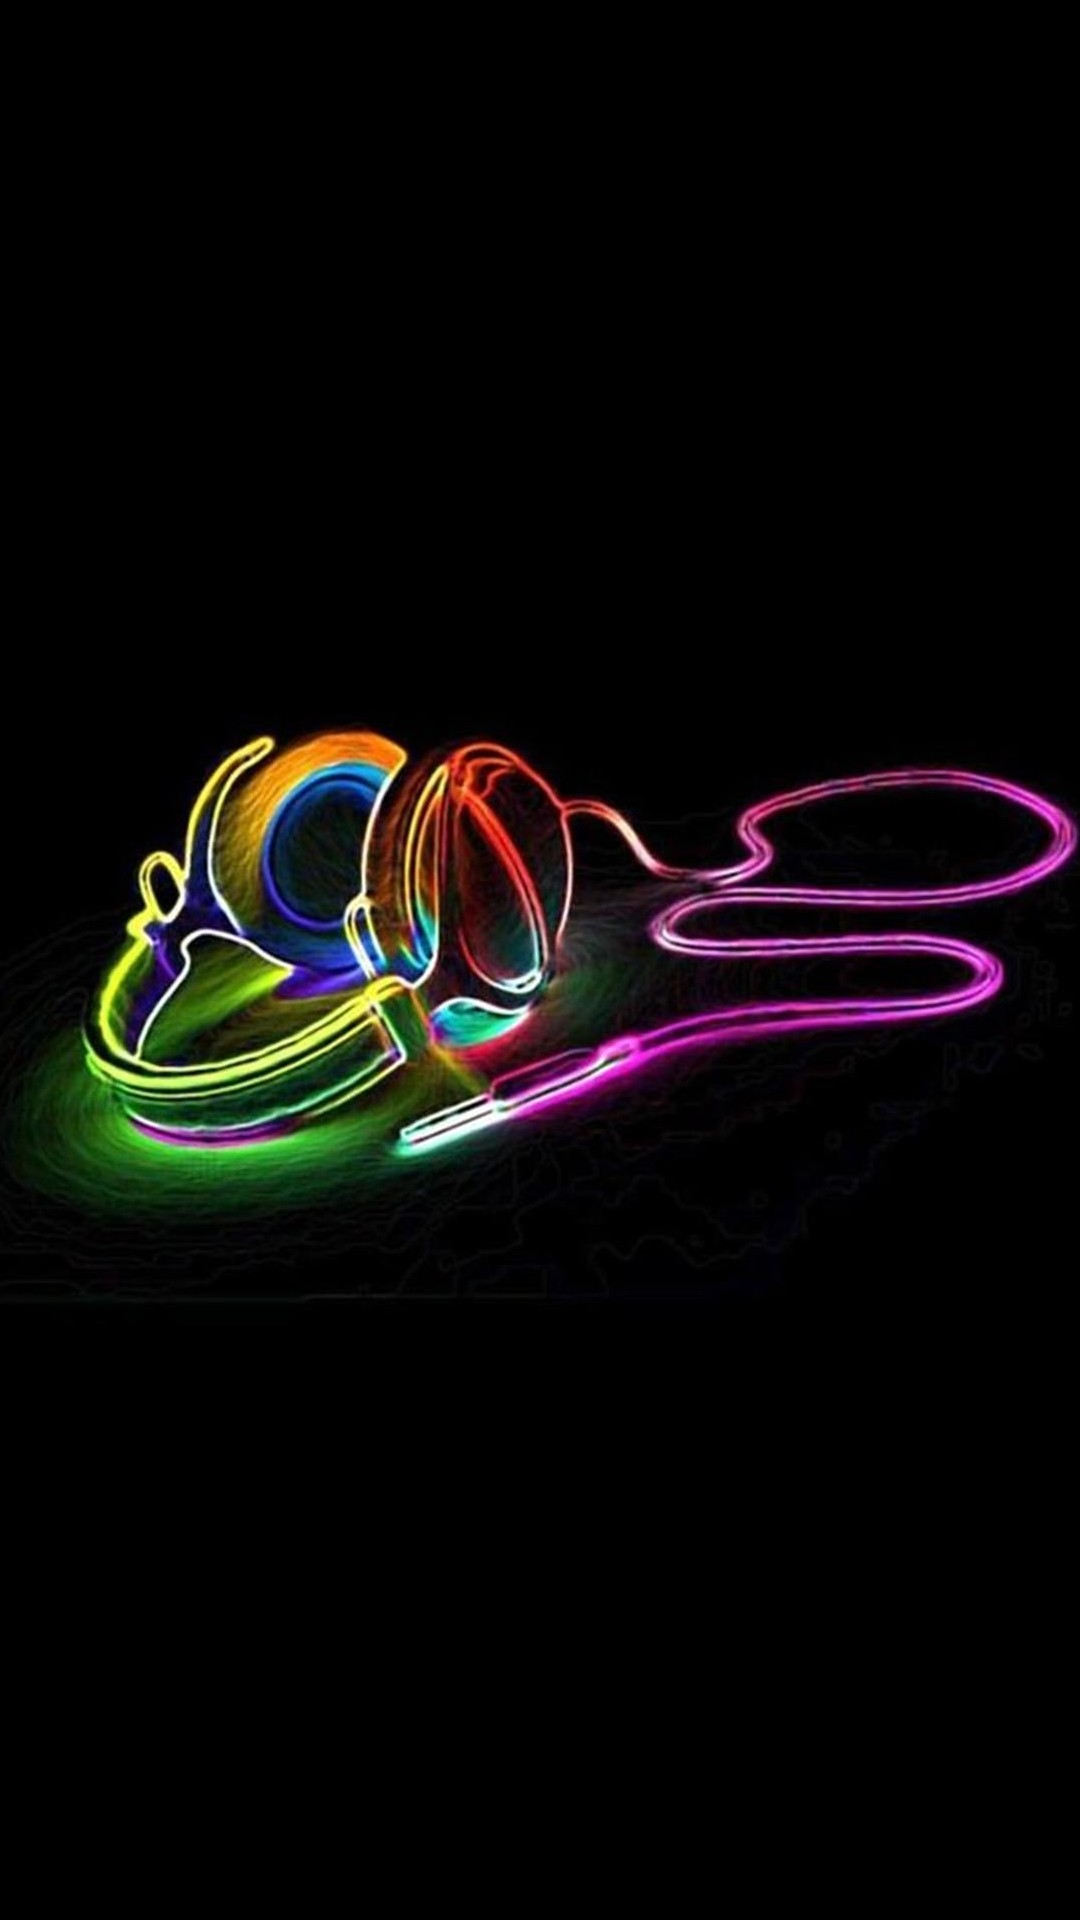 Colorful Music Notes Wallpaper Free Download Best Colorful